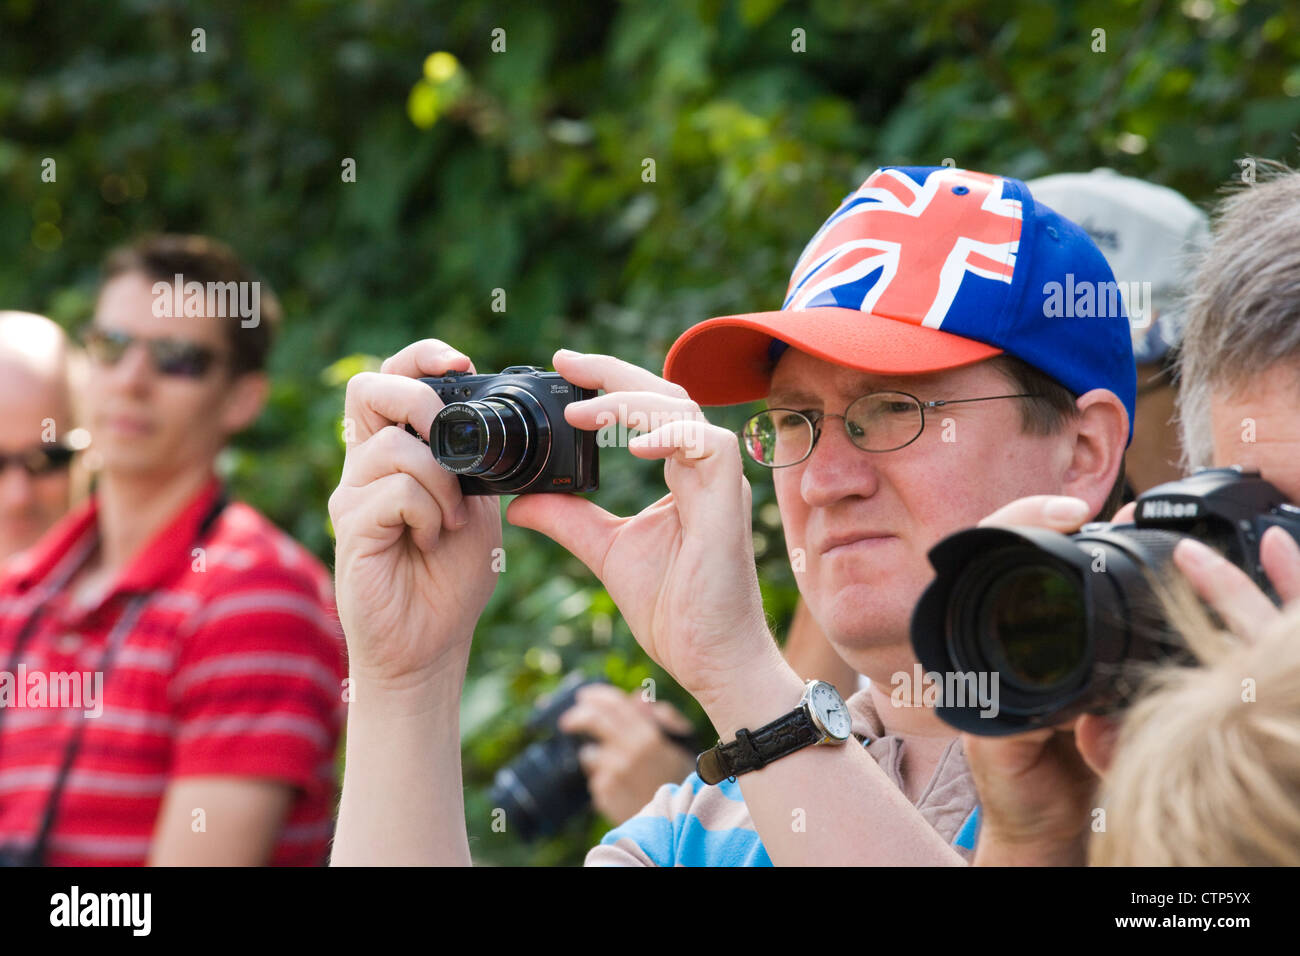 London 2012 Olympic Games. Spectators taking photographs of men's cycle road race at Ripley, Surrey. - Stock Image